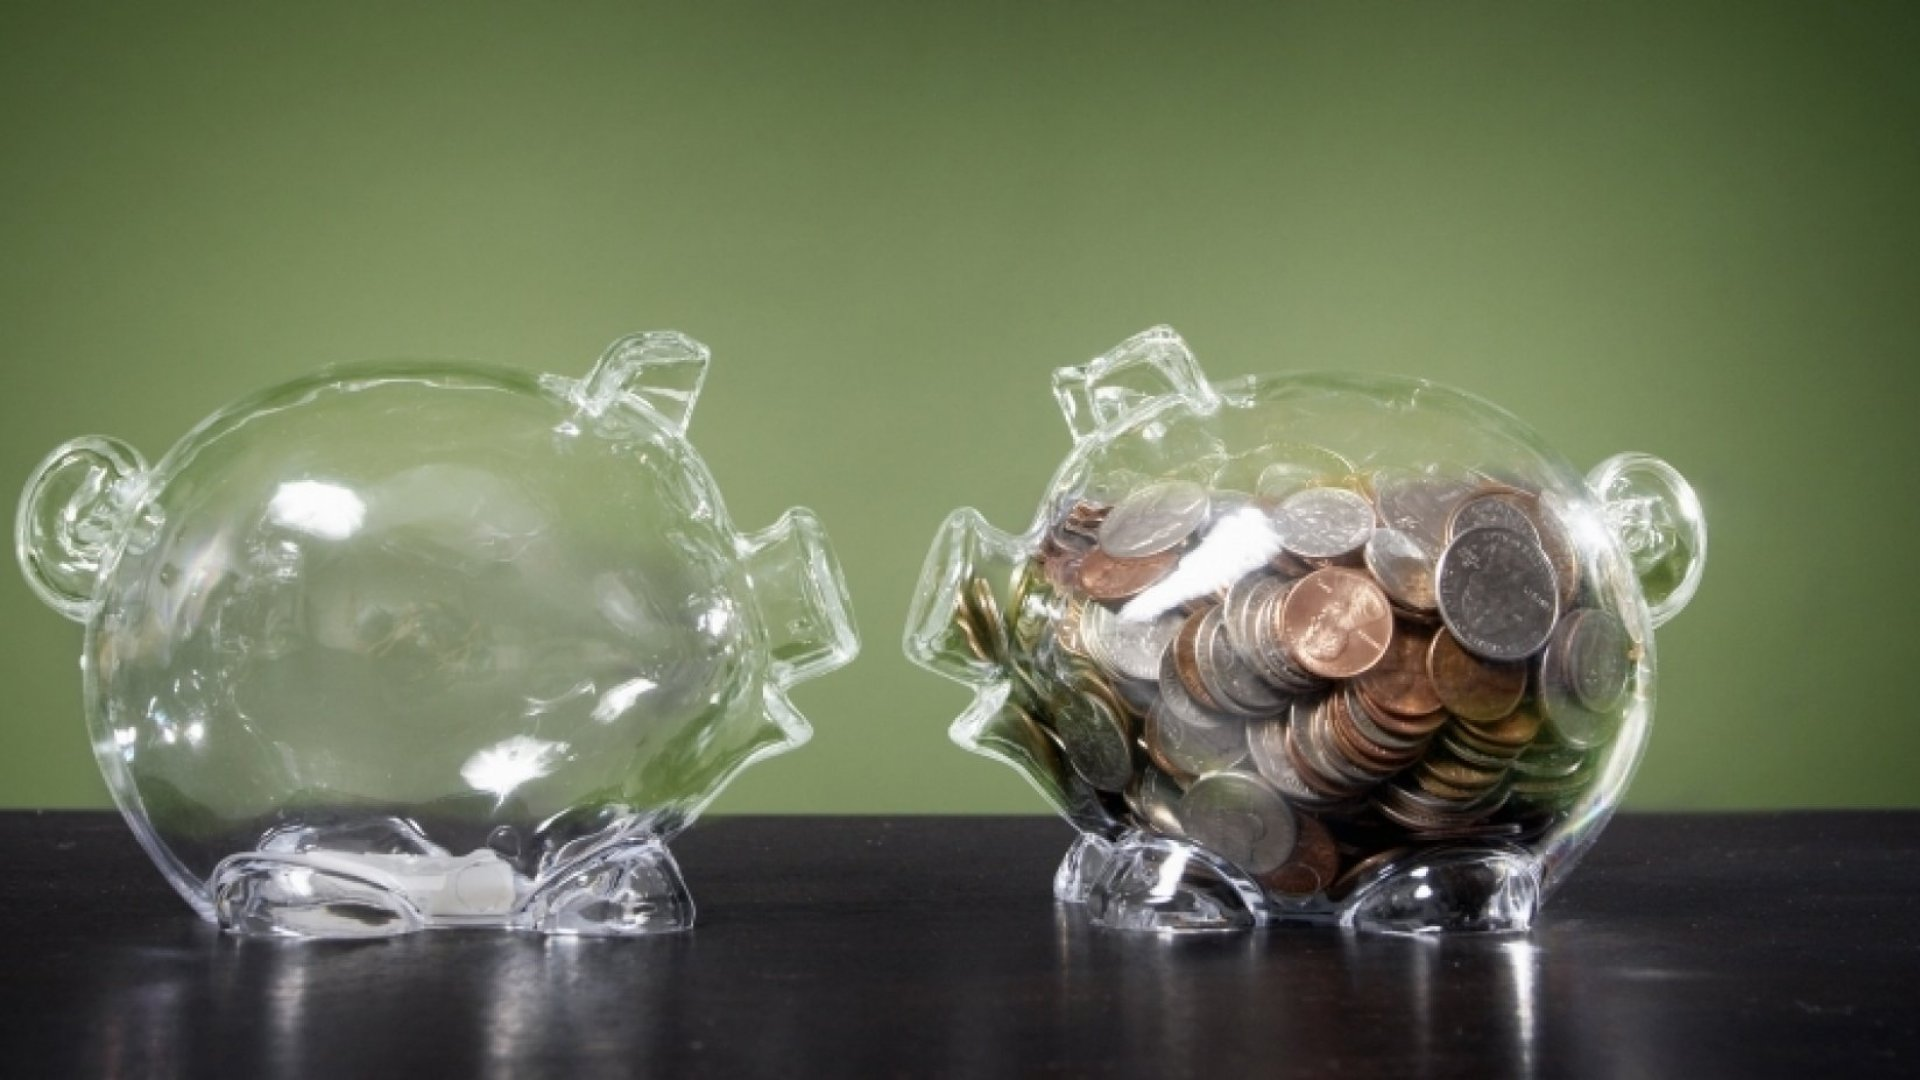 5 Monday Actions That Will Immediately Improve Your Finances